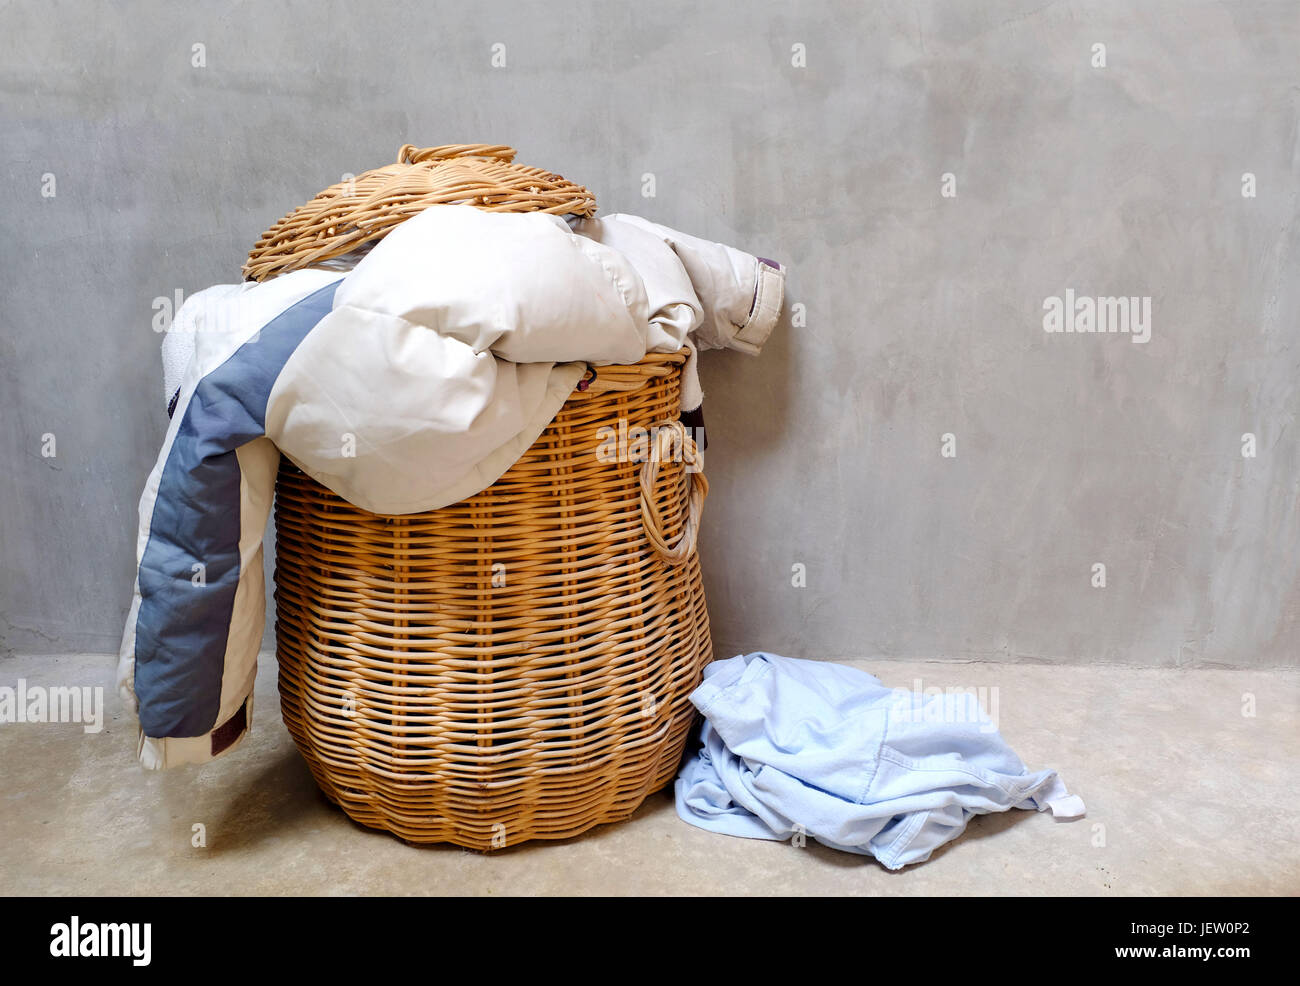 Overflowing wicker laundry basket. Household chore concept. - Stock Image